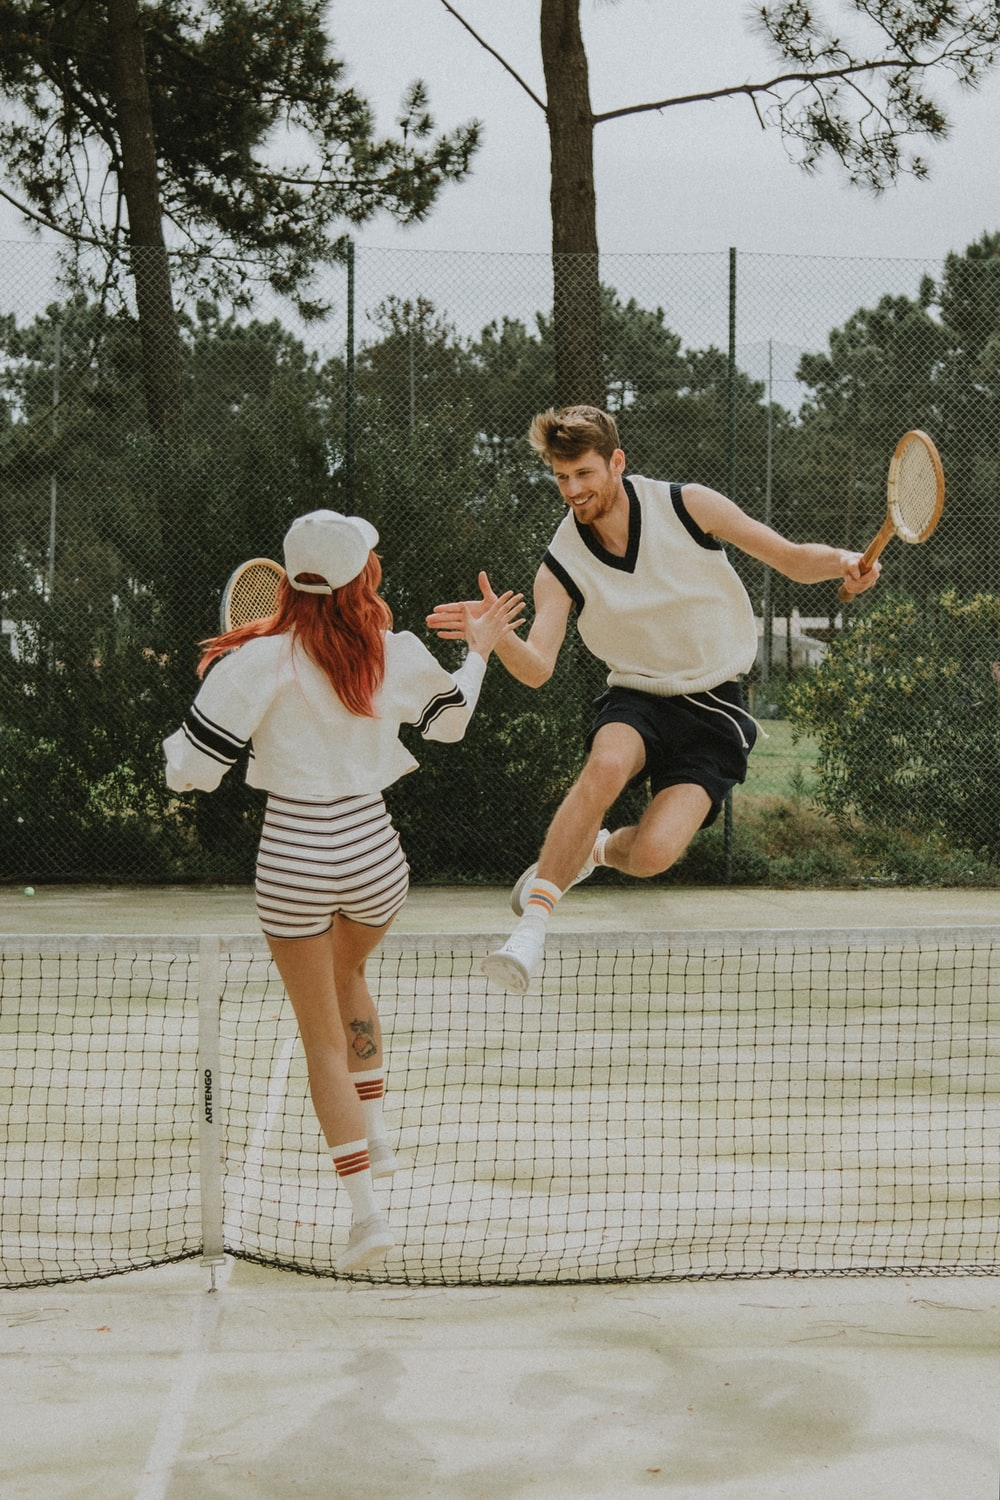 2 women in white and black dress holding tennis racket